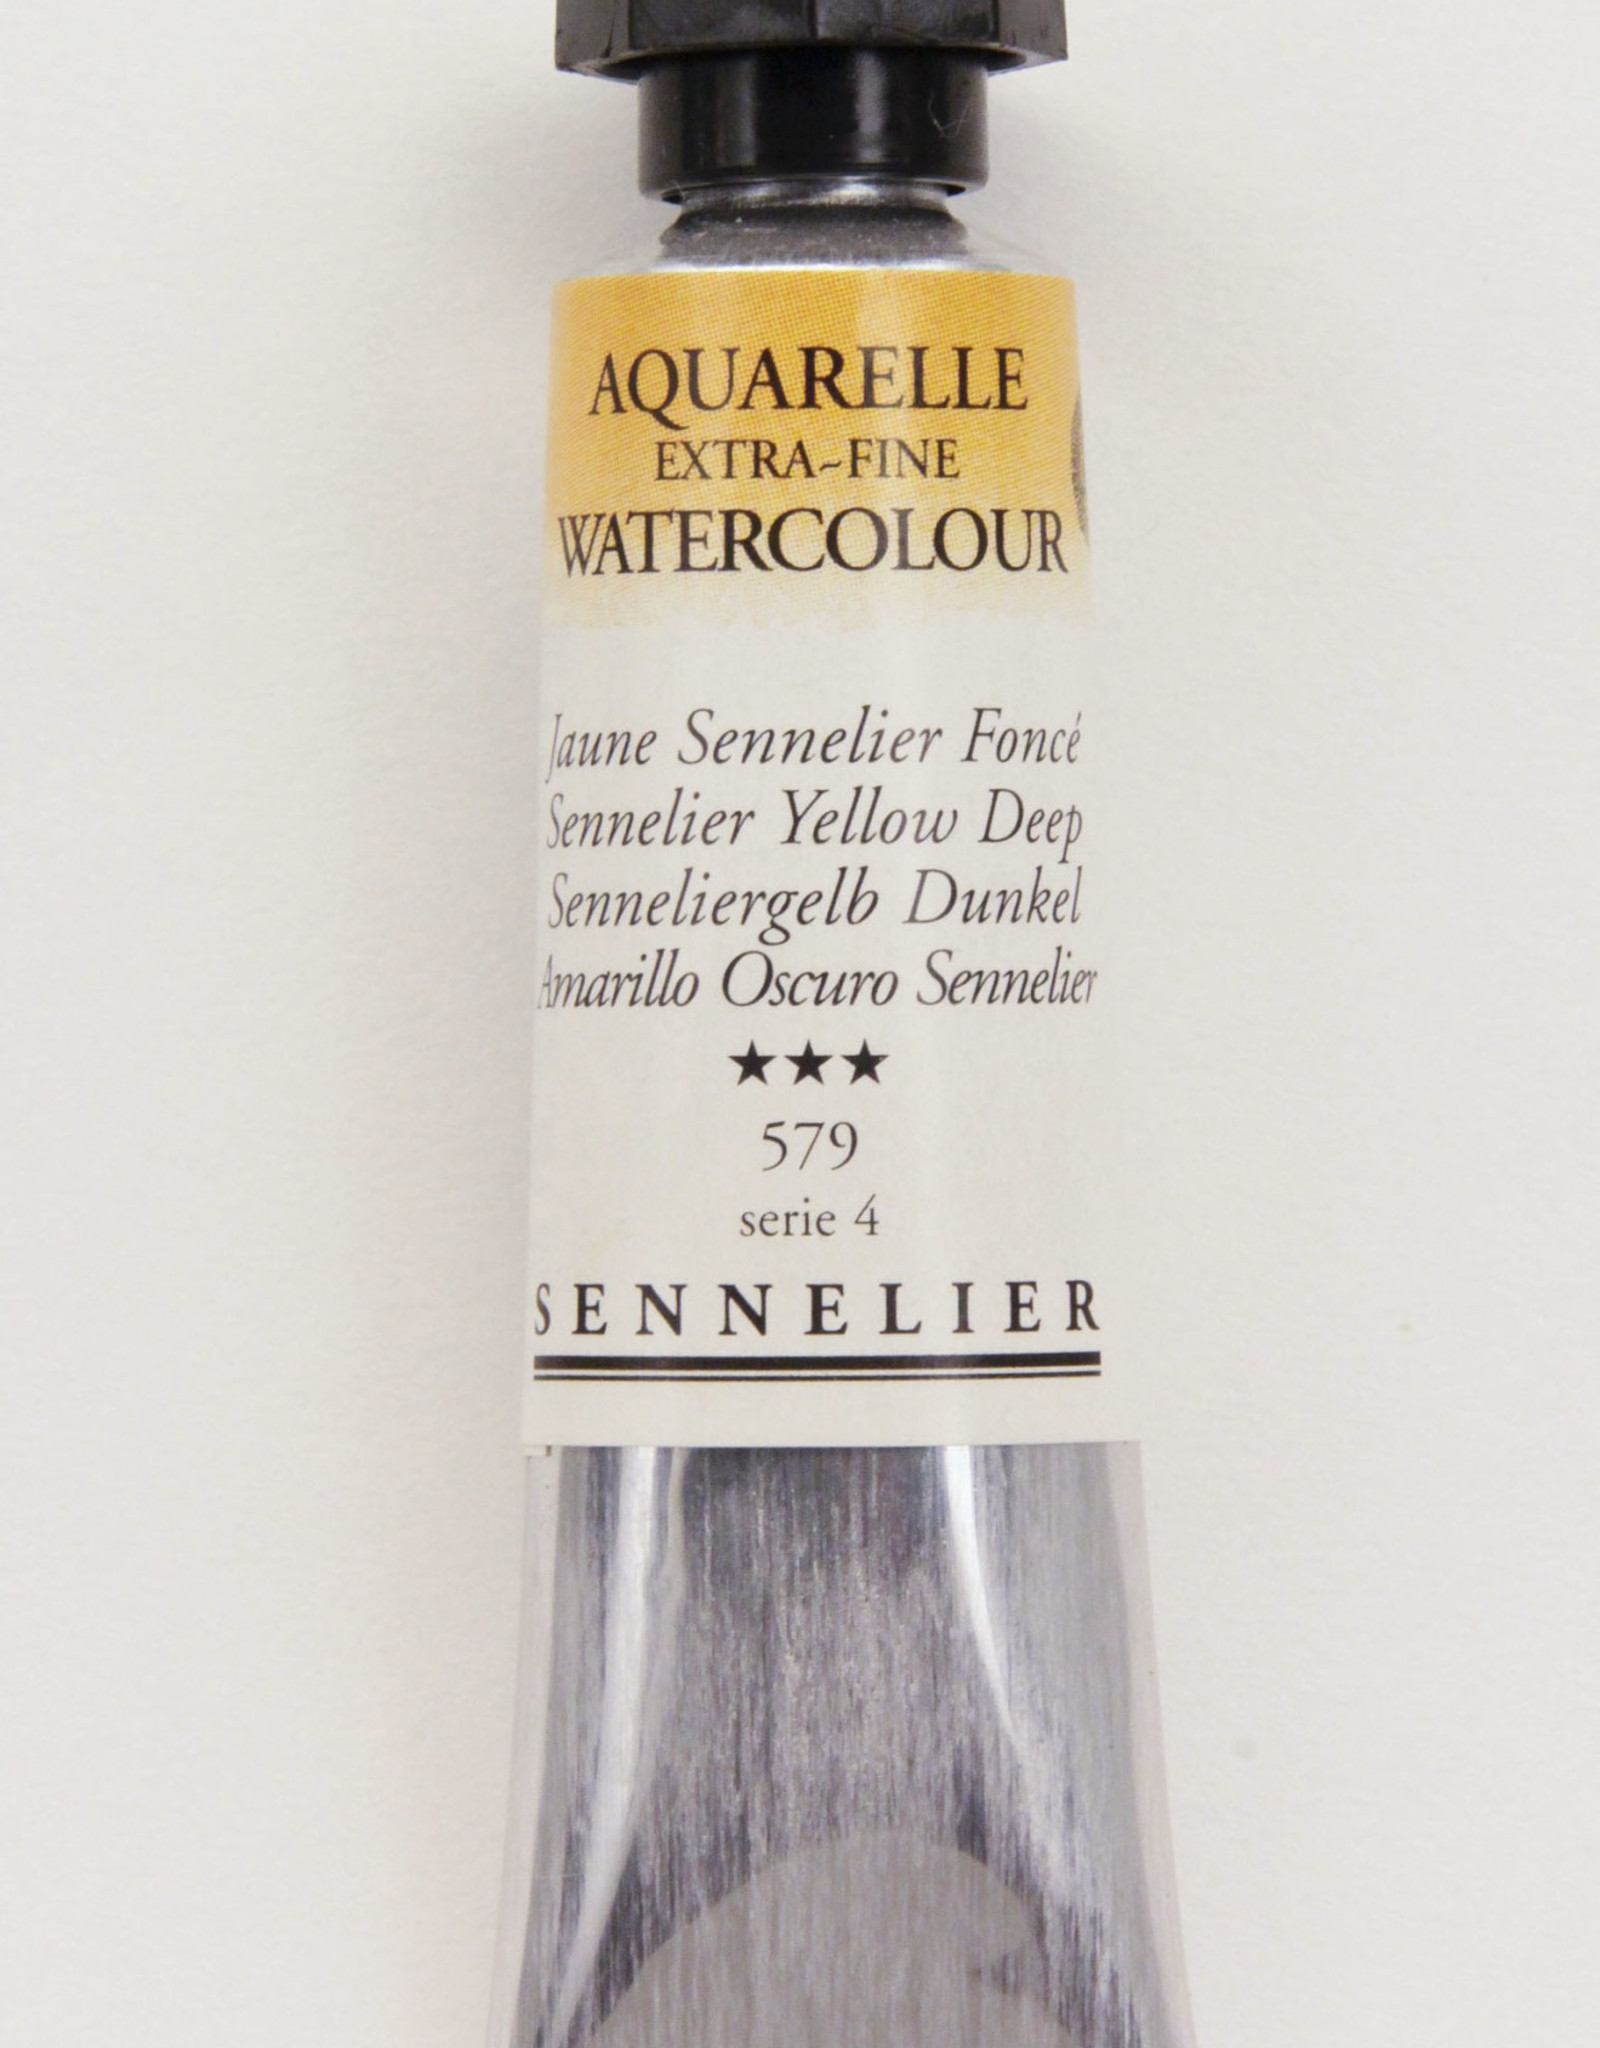 Sennelier, Aquarelle Watercolor Paint, Sennelier Yellow Deep, 579,10ml Tube, Series 4